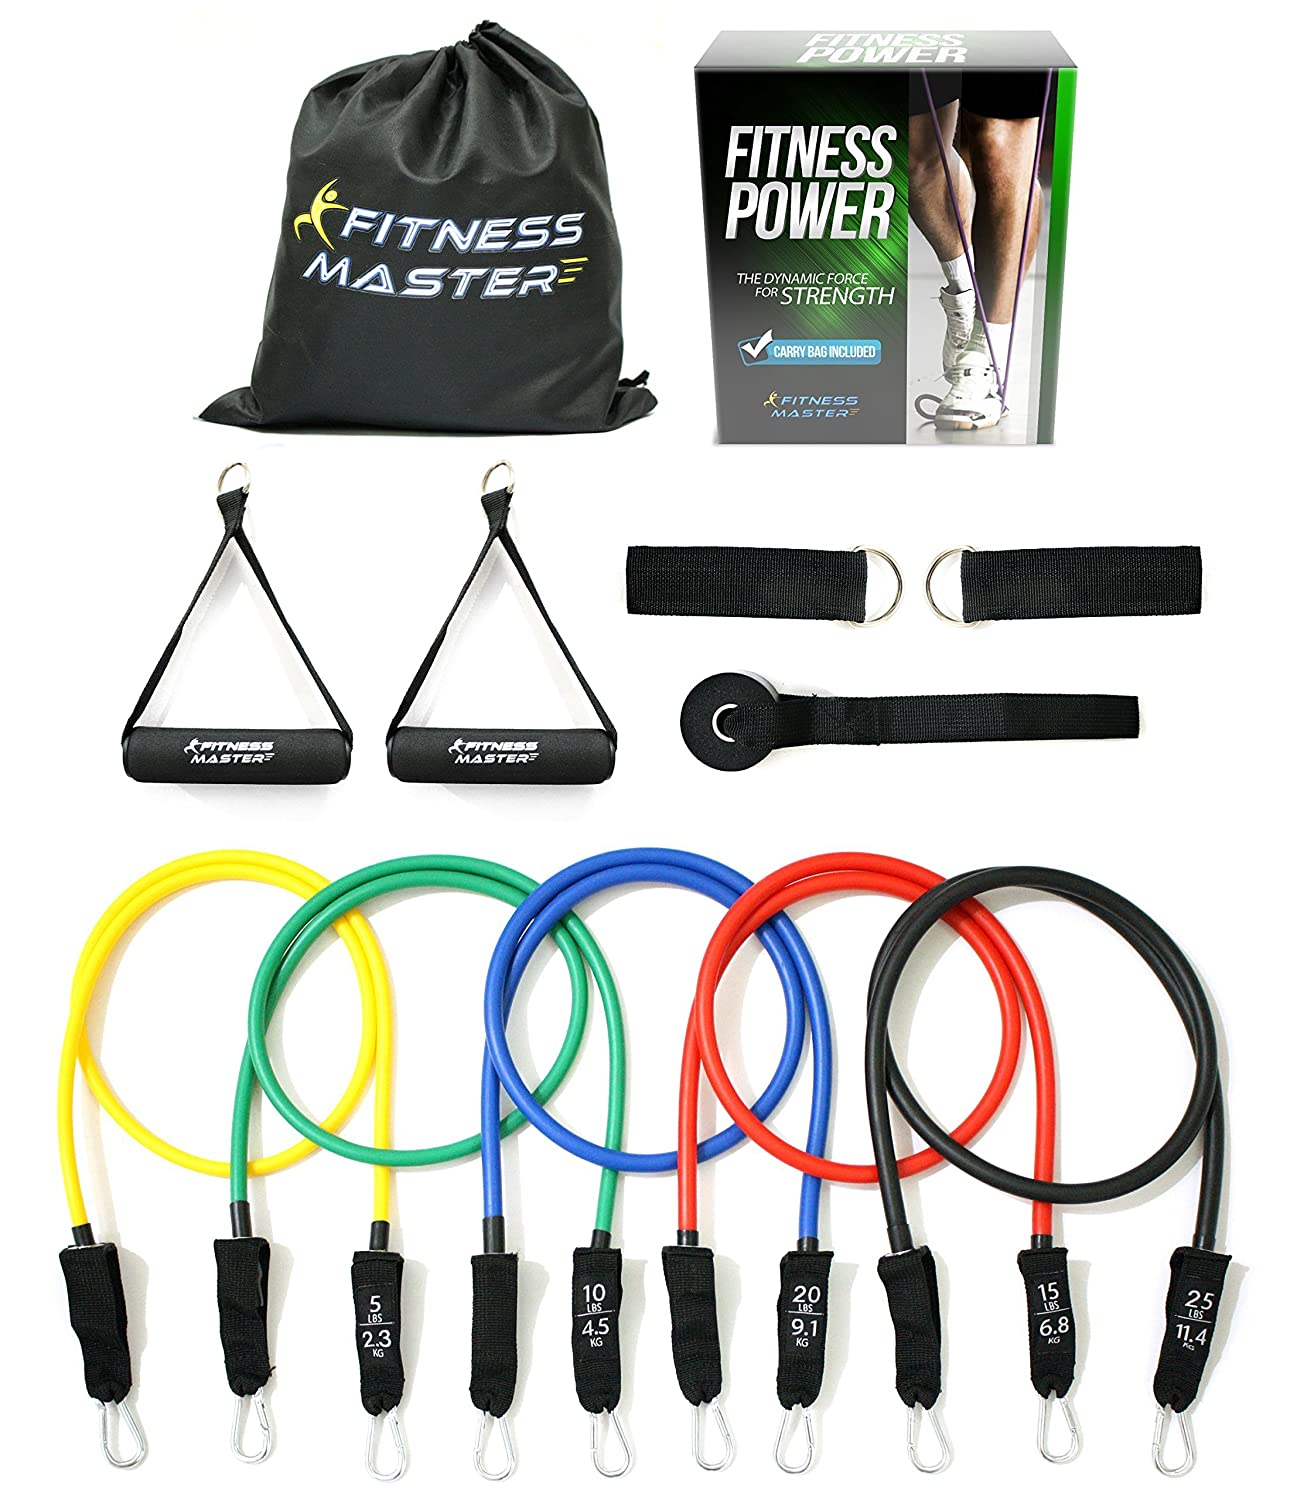 Amazon.com : Resistance Bands - Tension Band Set for Weights Exercise, Fitness  Workout - Heavy Anti Snap Resistant - Comes with Door Anchor Attachment, ...